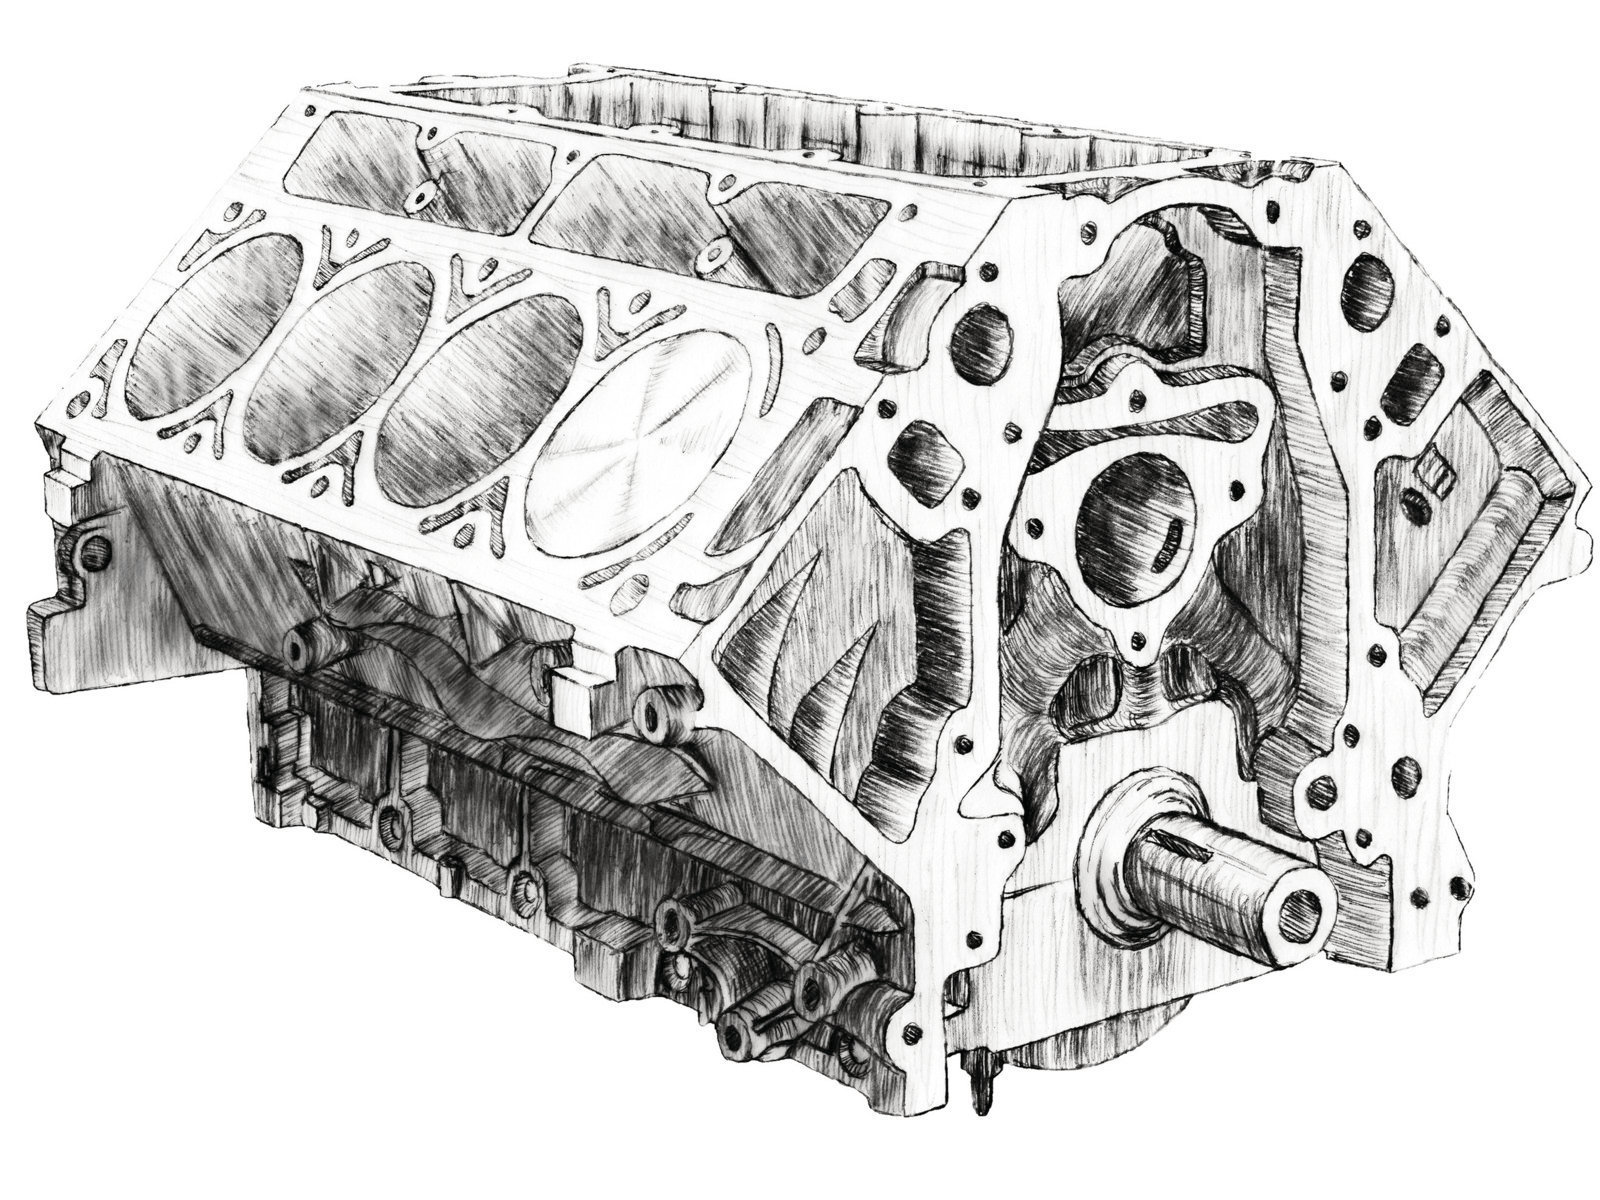 1208chp 02 O  August 2012 Chevy High Performance Qa Engine